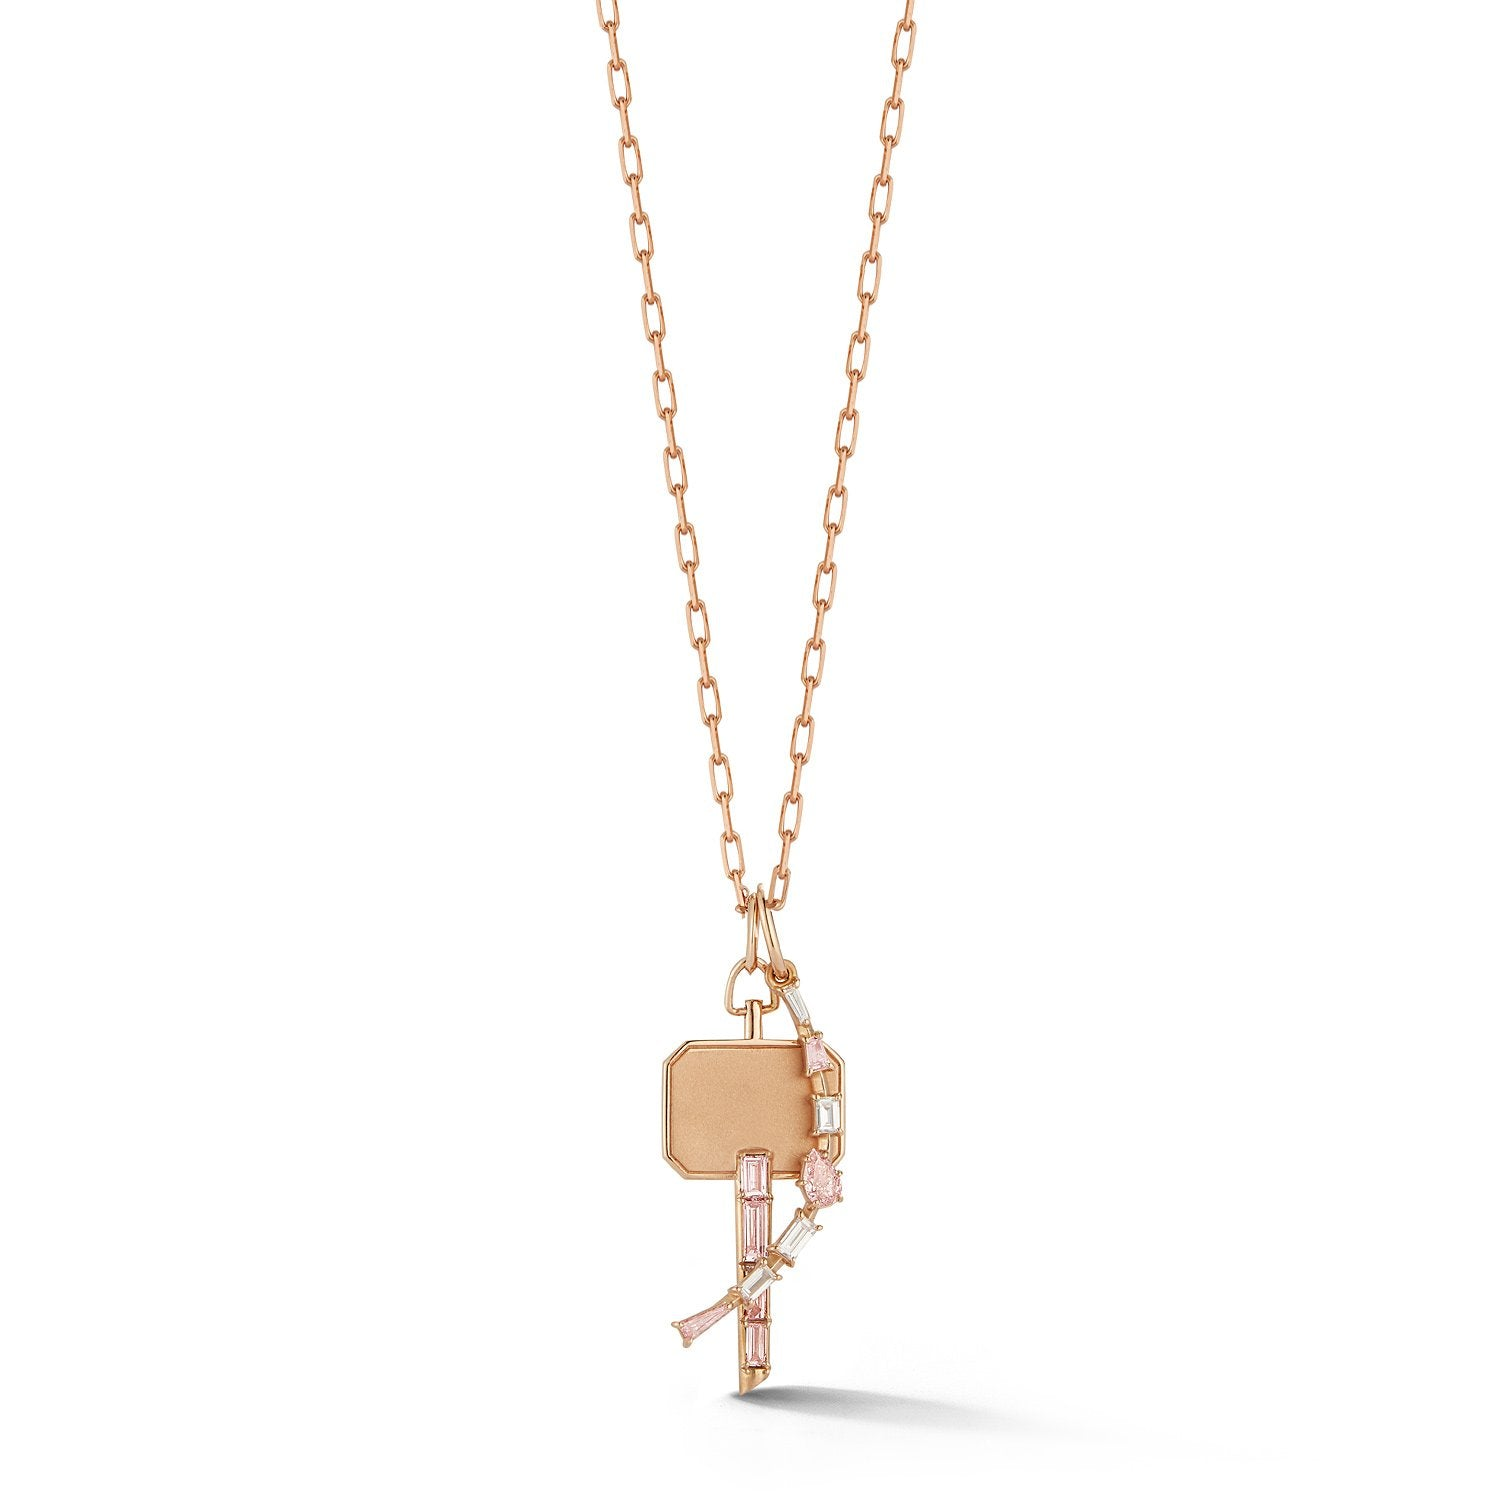 Catherine Baguette Diamond Key Charm